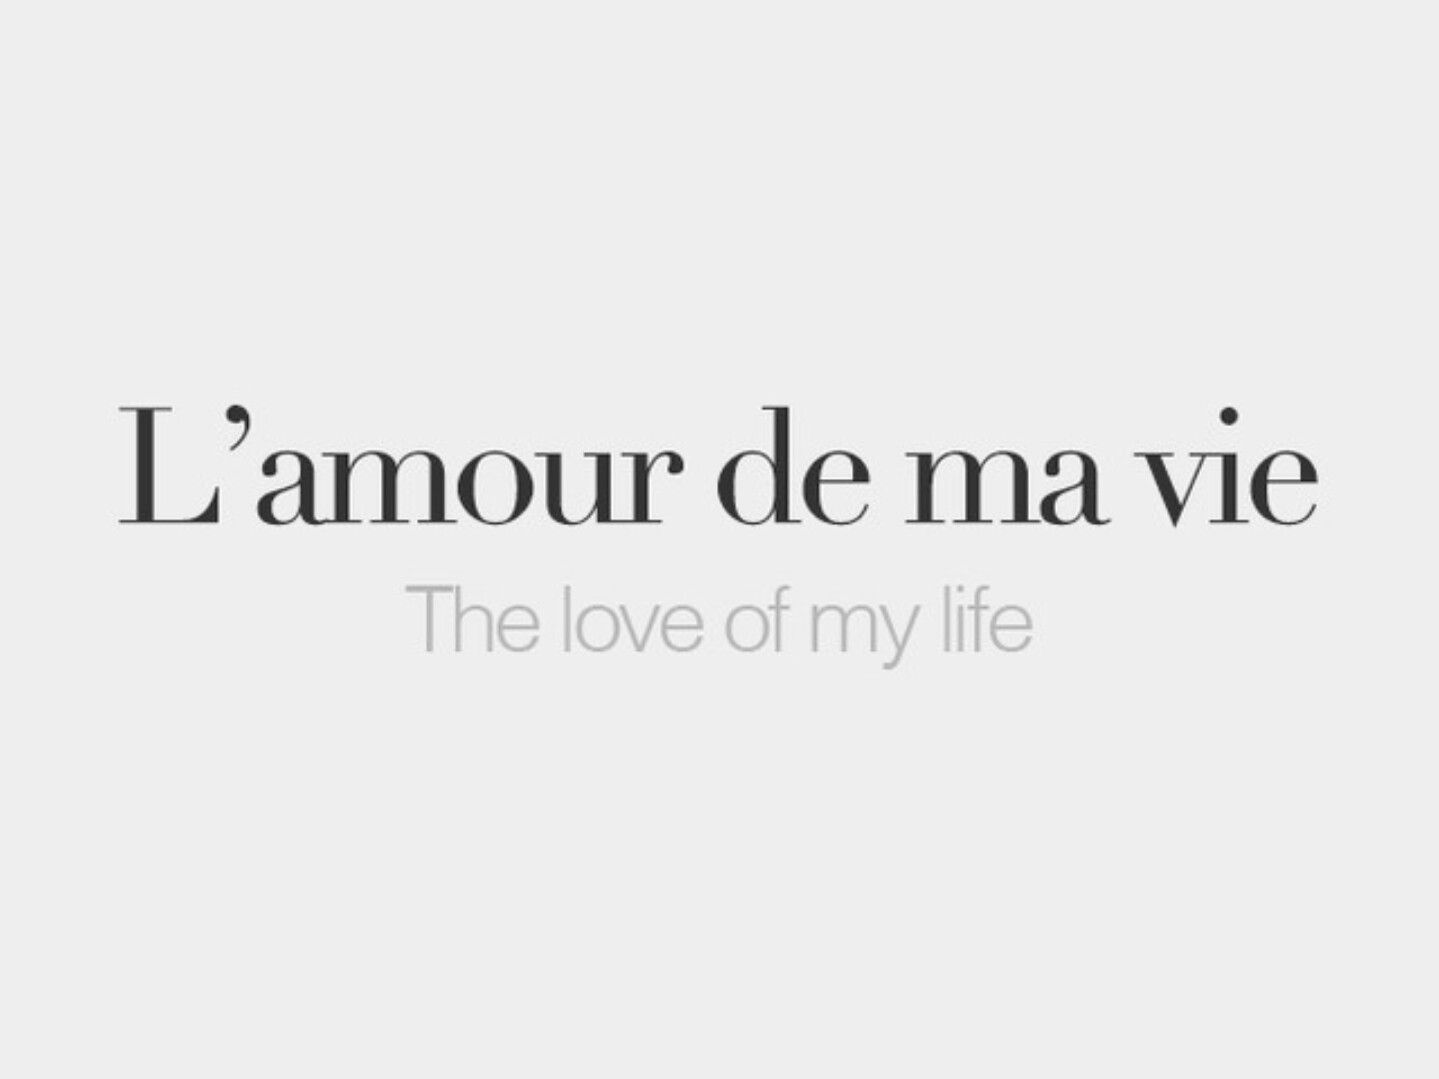 Pin By Luisa Castro On Cute Instagram Things French Quotes French Words How To Speak French